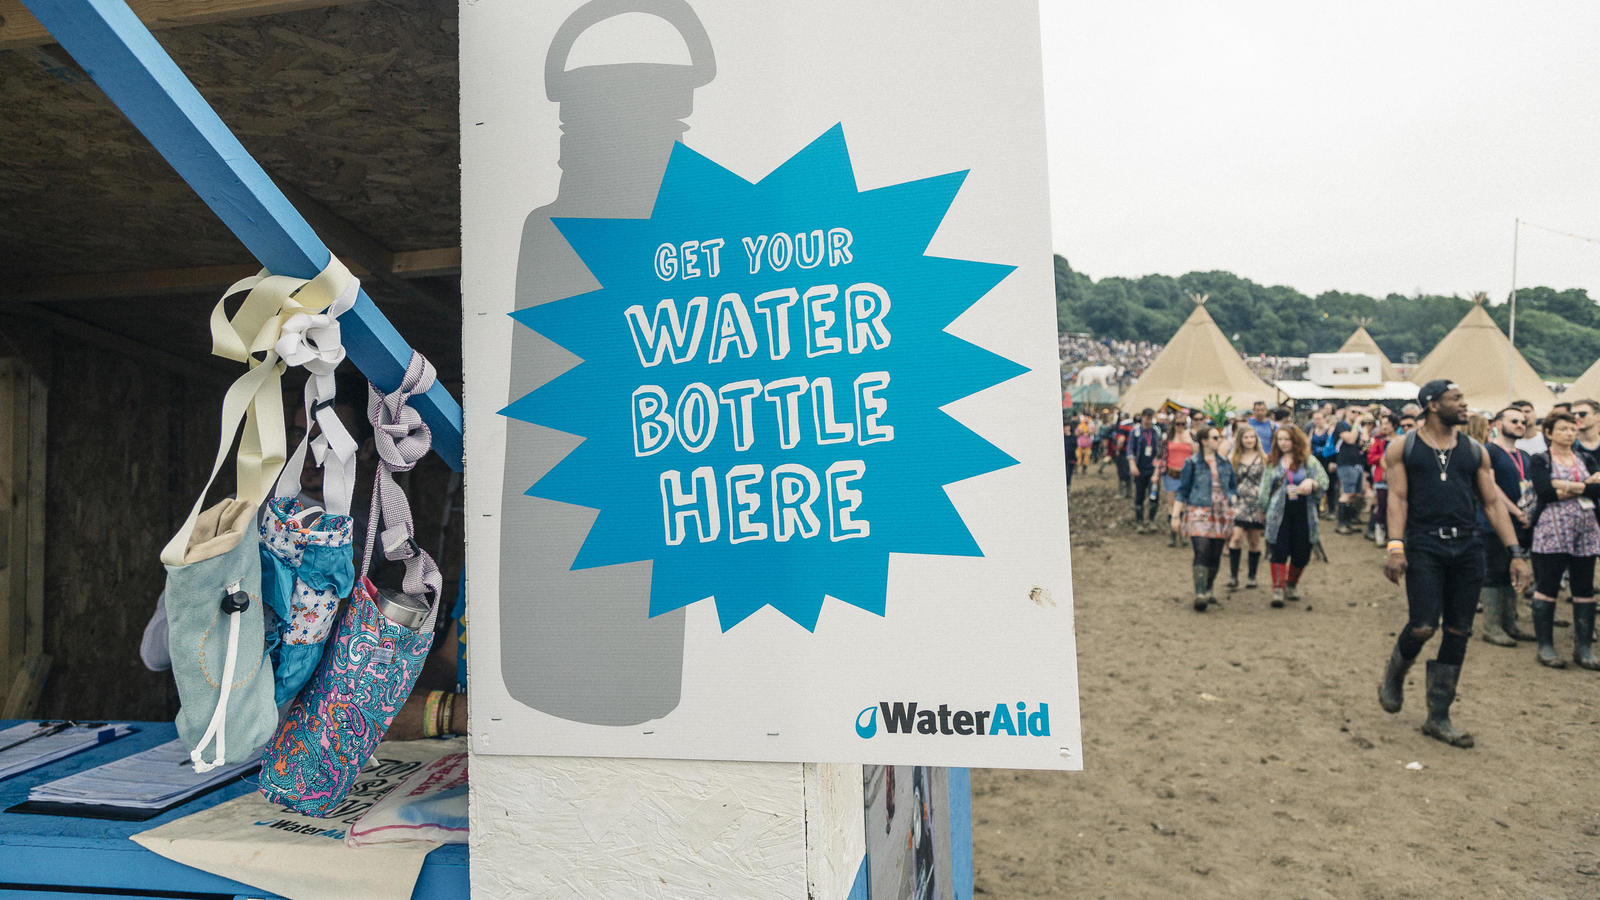 A sign lets festivalgoers know that they can pick up preordered official Glastonbury Festival Water Bottles at a WaterAid kiosk, or buy one for £10.